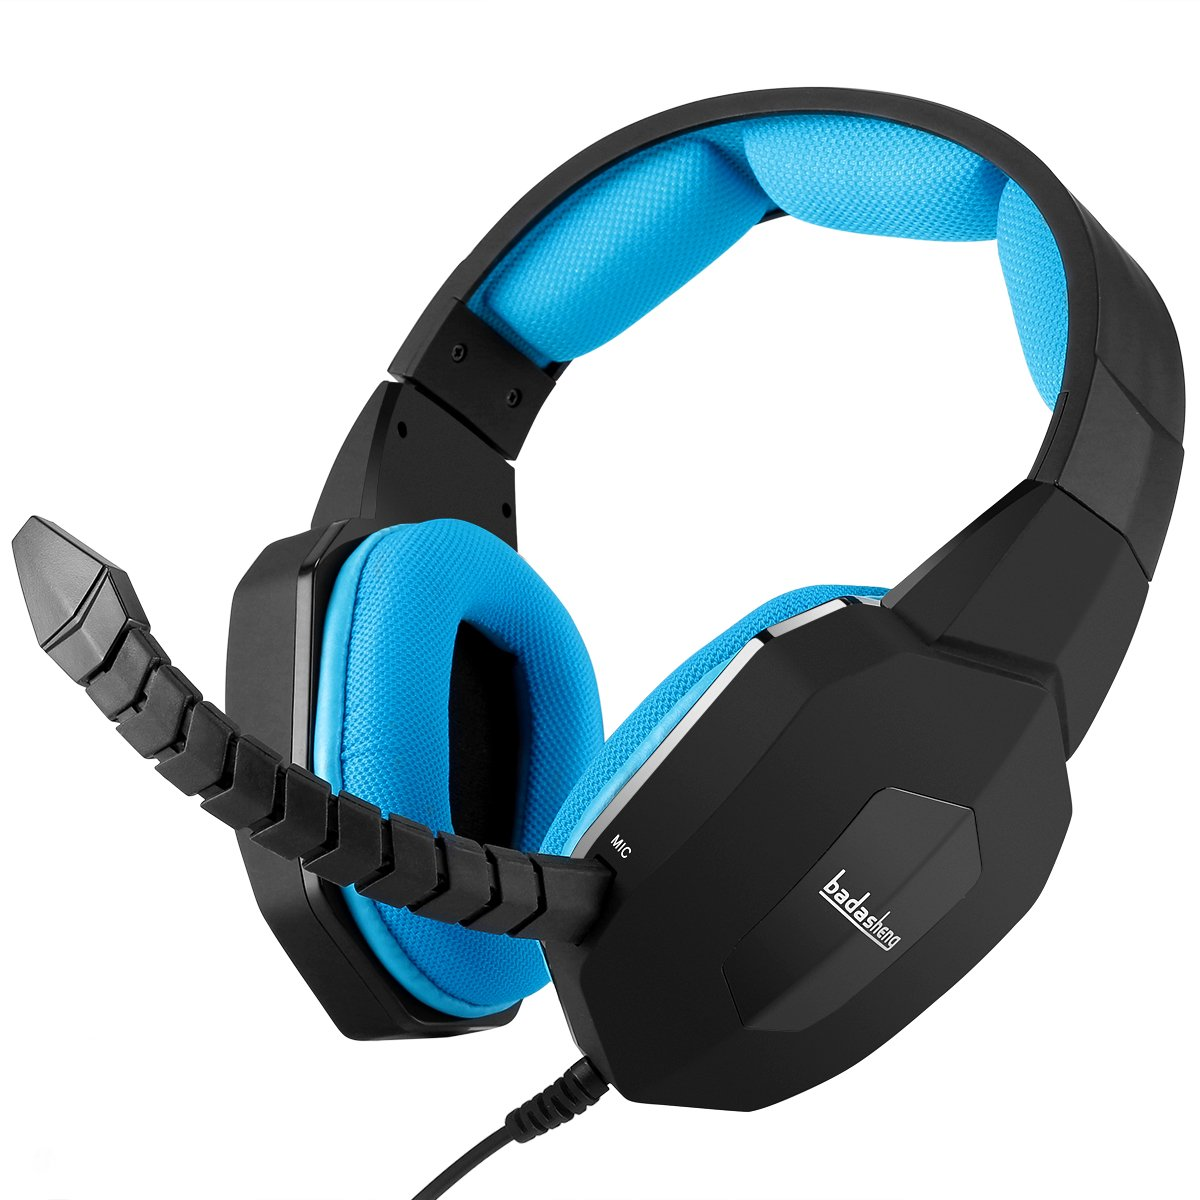 Amazon.com: PS4 Xbox one 3.5mm Stereo Gaming Headset For Playstation ...